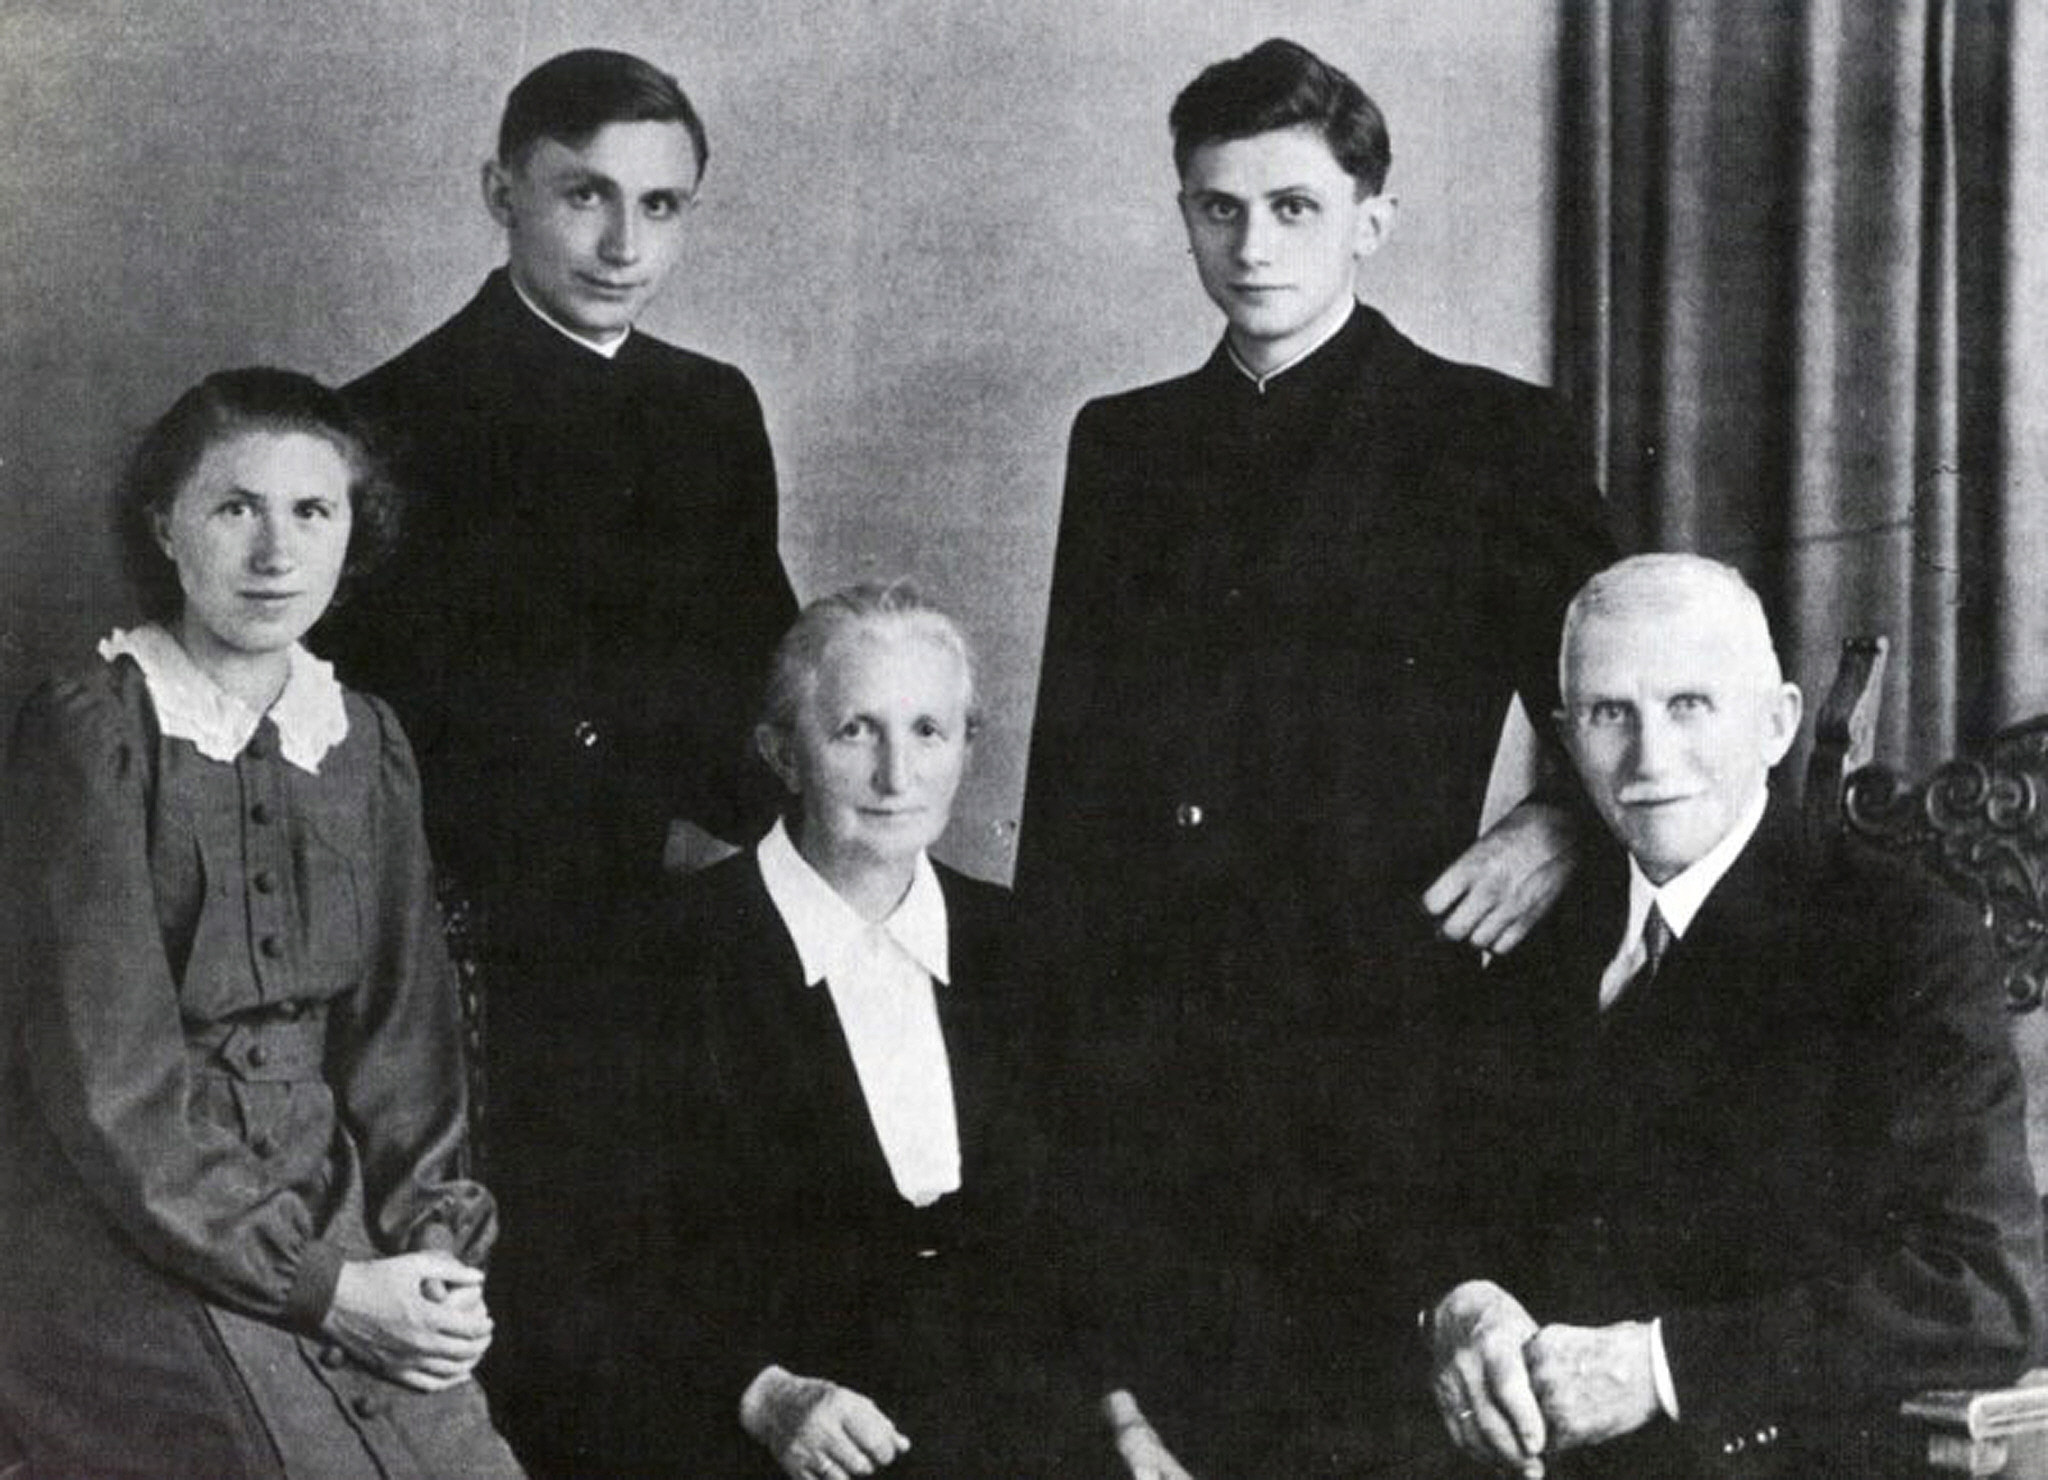 Picture taken in 1951 shows the family of Josef Ratzinger (up, R) in Freising, Bavaria, after the ordination of himself and his brother Georg (up L). Germany's Cardinal Joseph Ratzinger was elected the 265th pope of the Roman Catholic Church on 19 April 2005 and took the name Benedict XVI. Bottom row : his sister Maria, his Mother Maria and his father Josef.